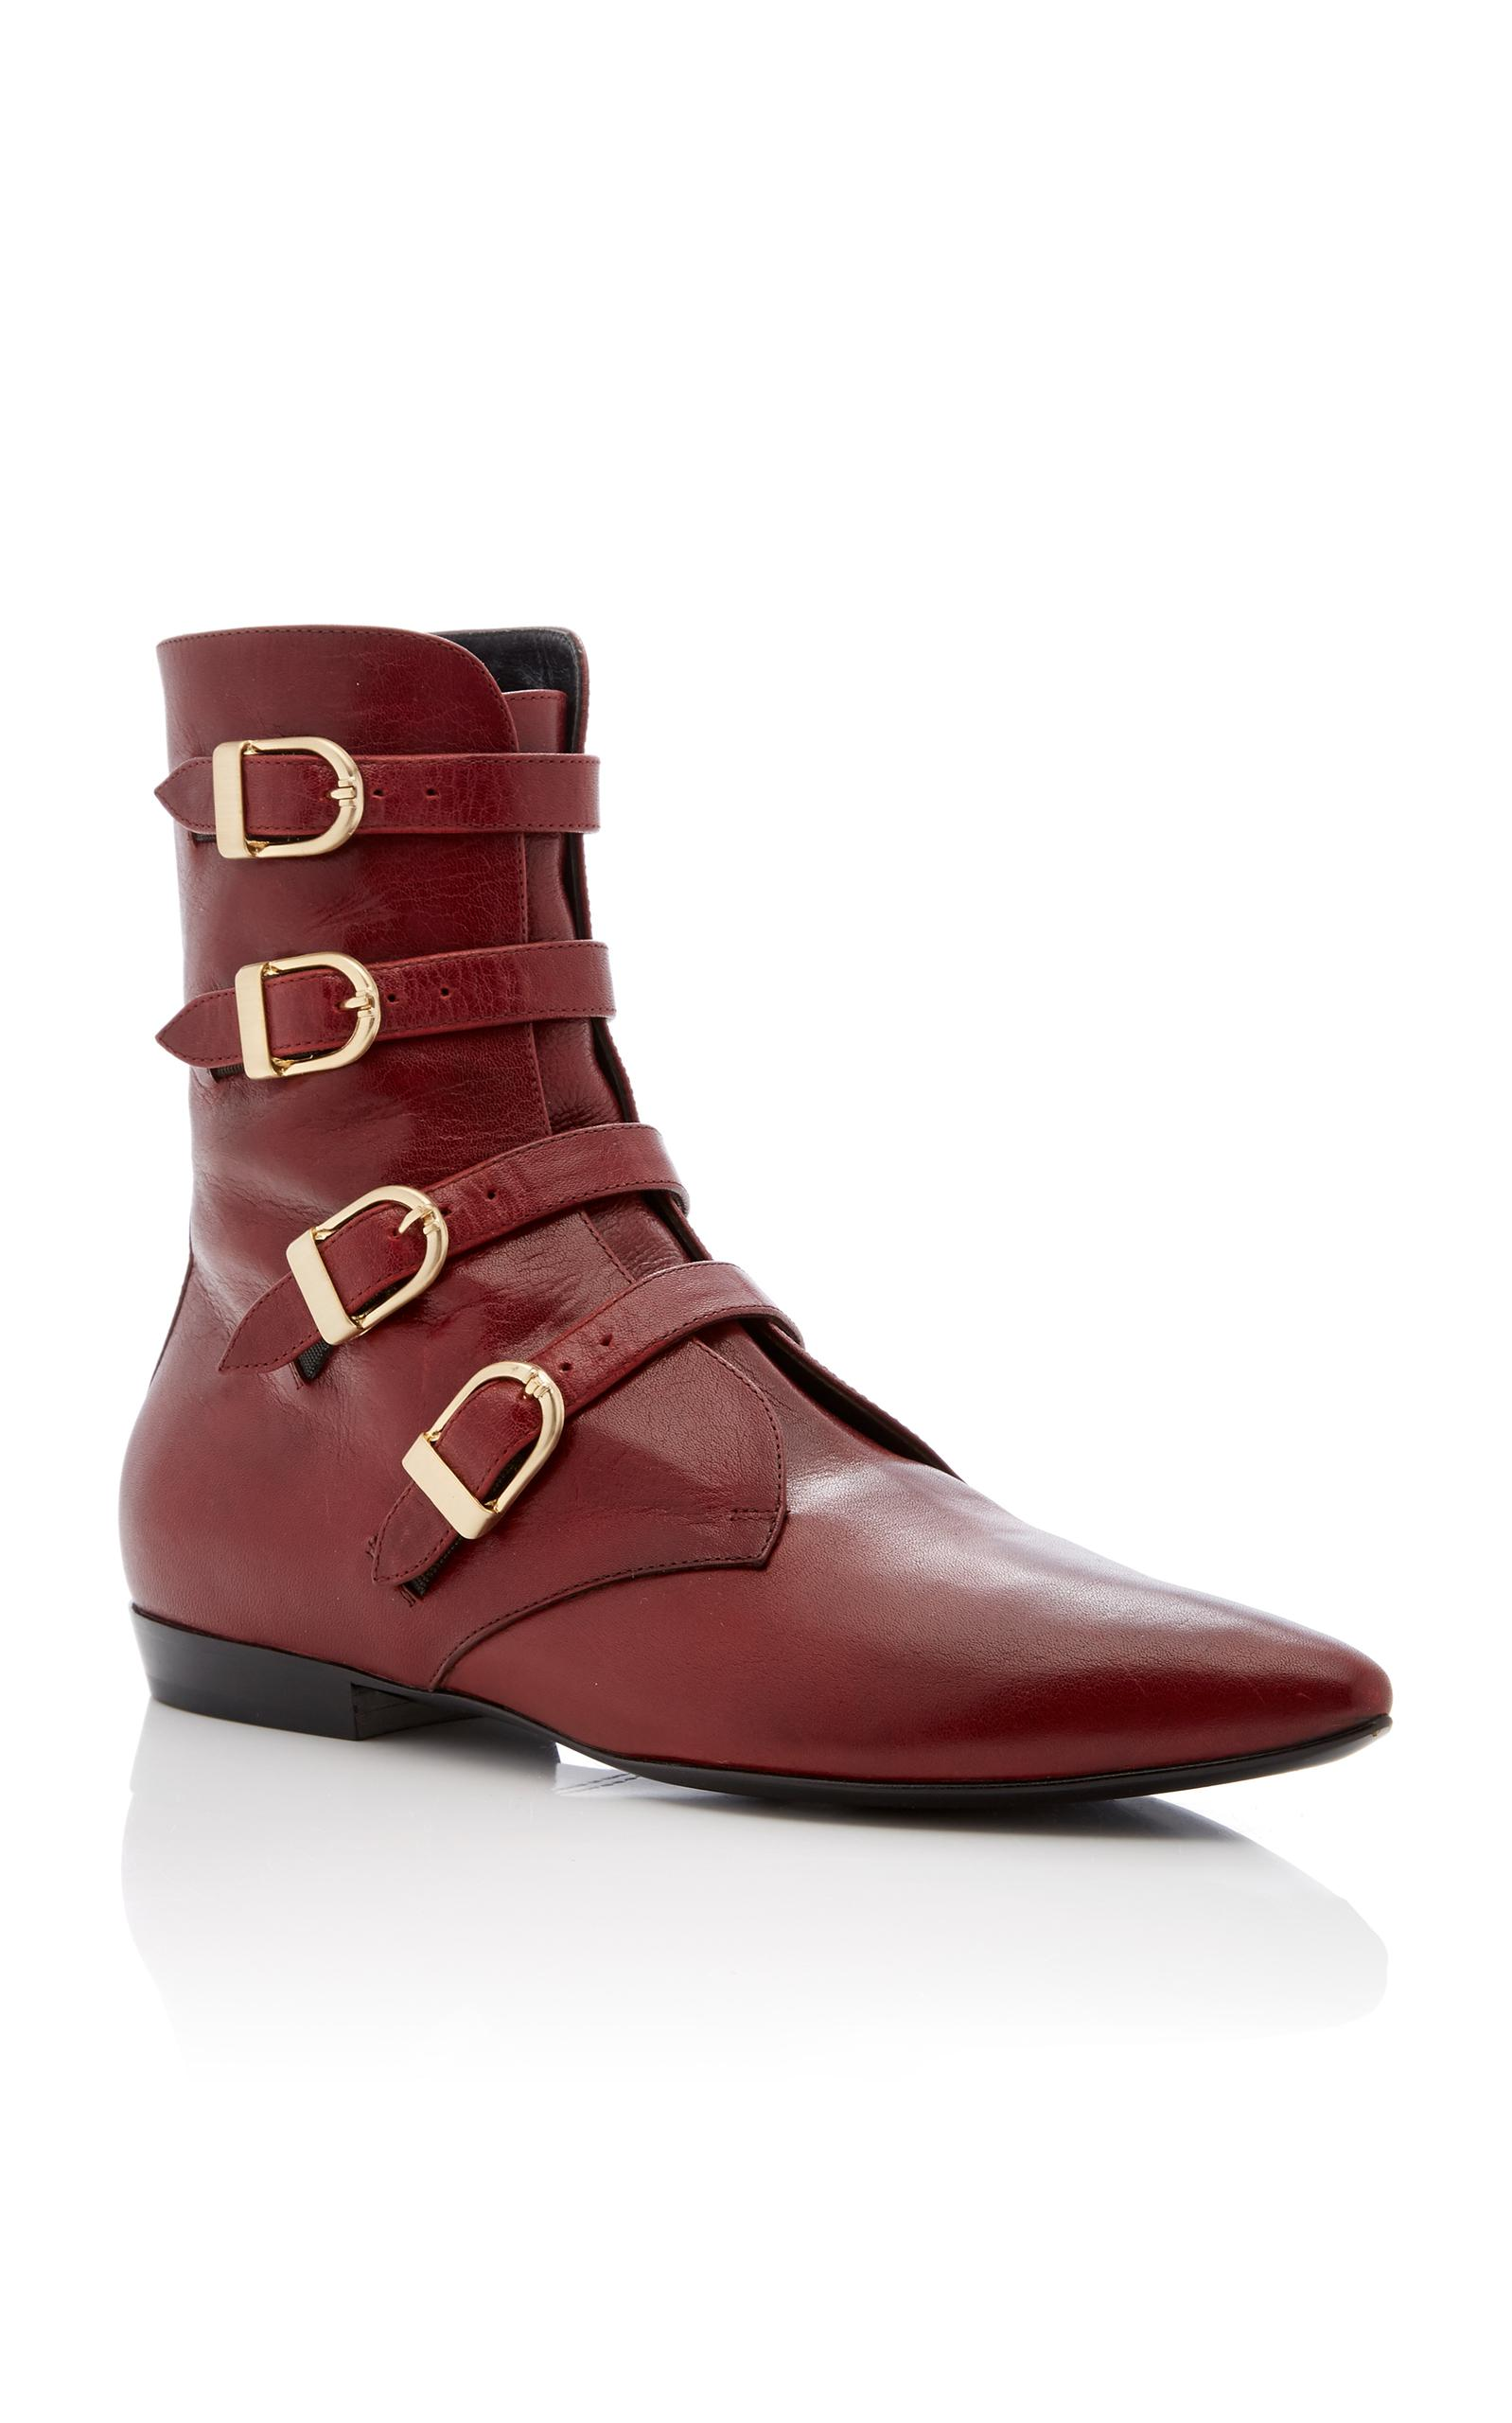 Philosophy Di Lorenzo Serafini Leather Buckle Ankle Boot in Red